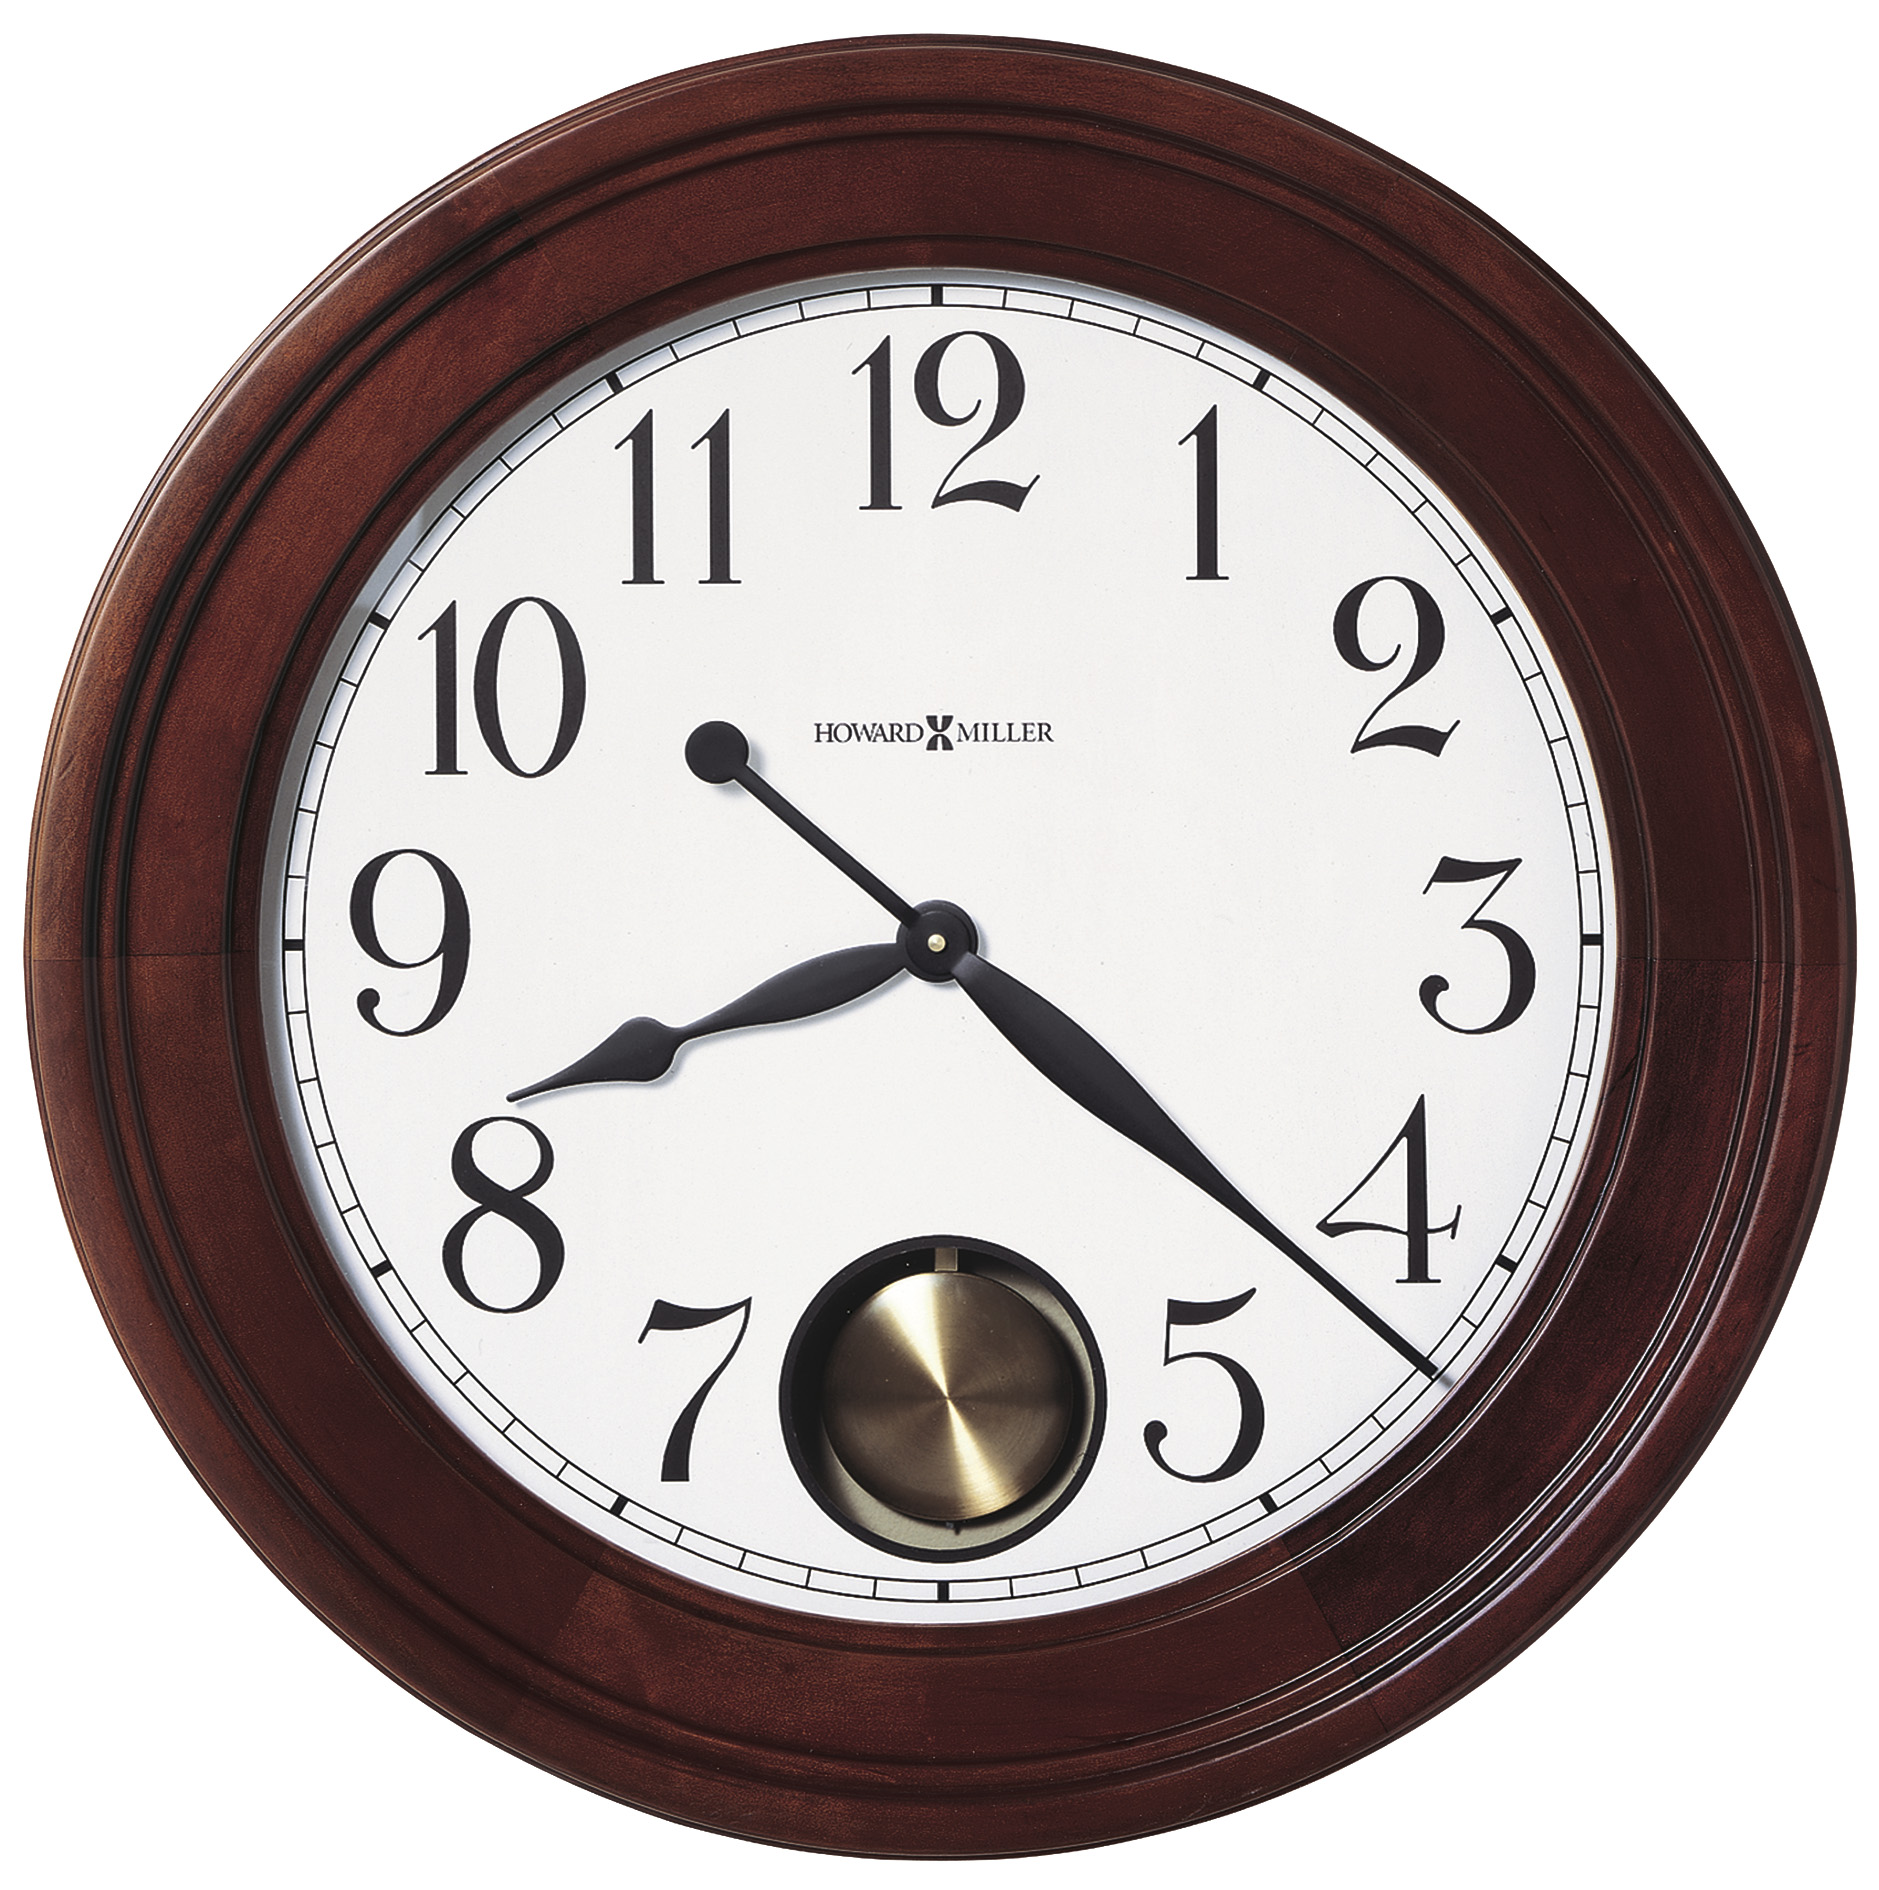 Huge Wall Clocks Large Wall Clocks Oversized Big Clocks At Clockshops